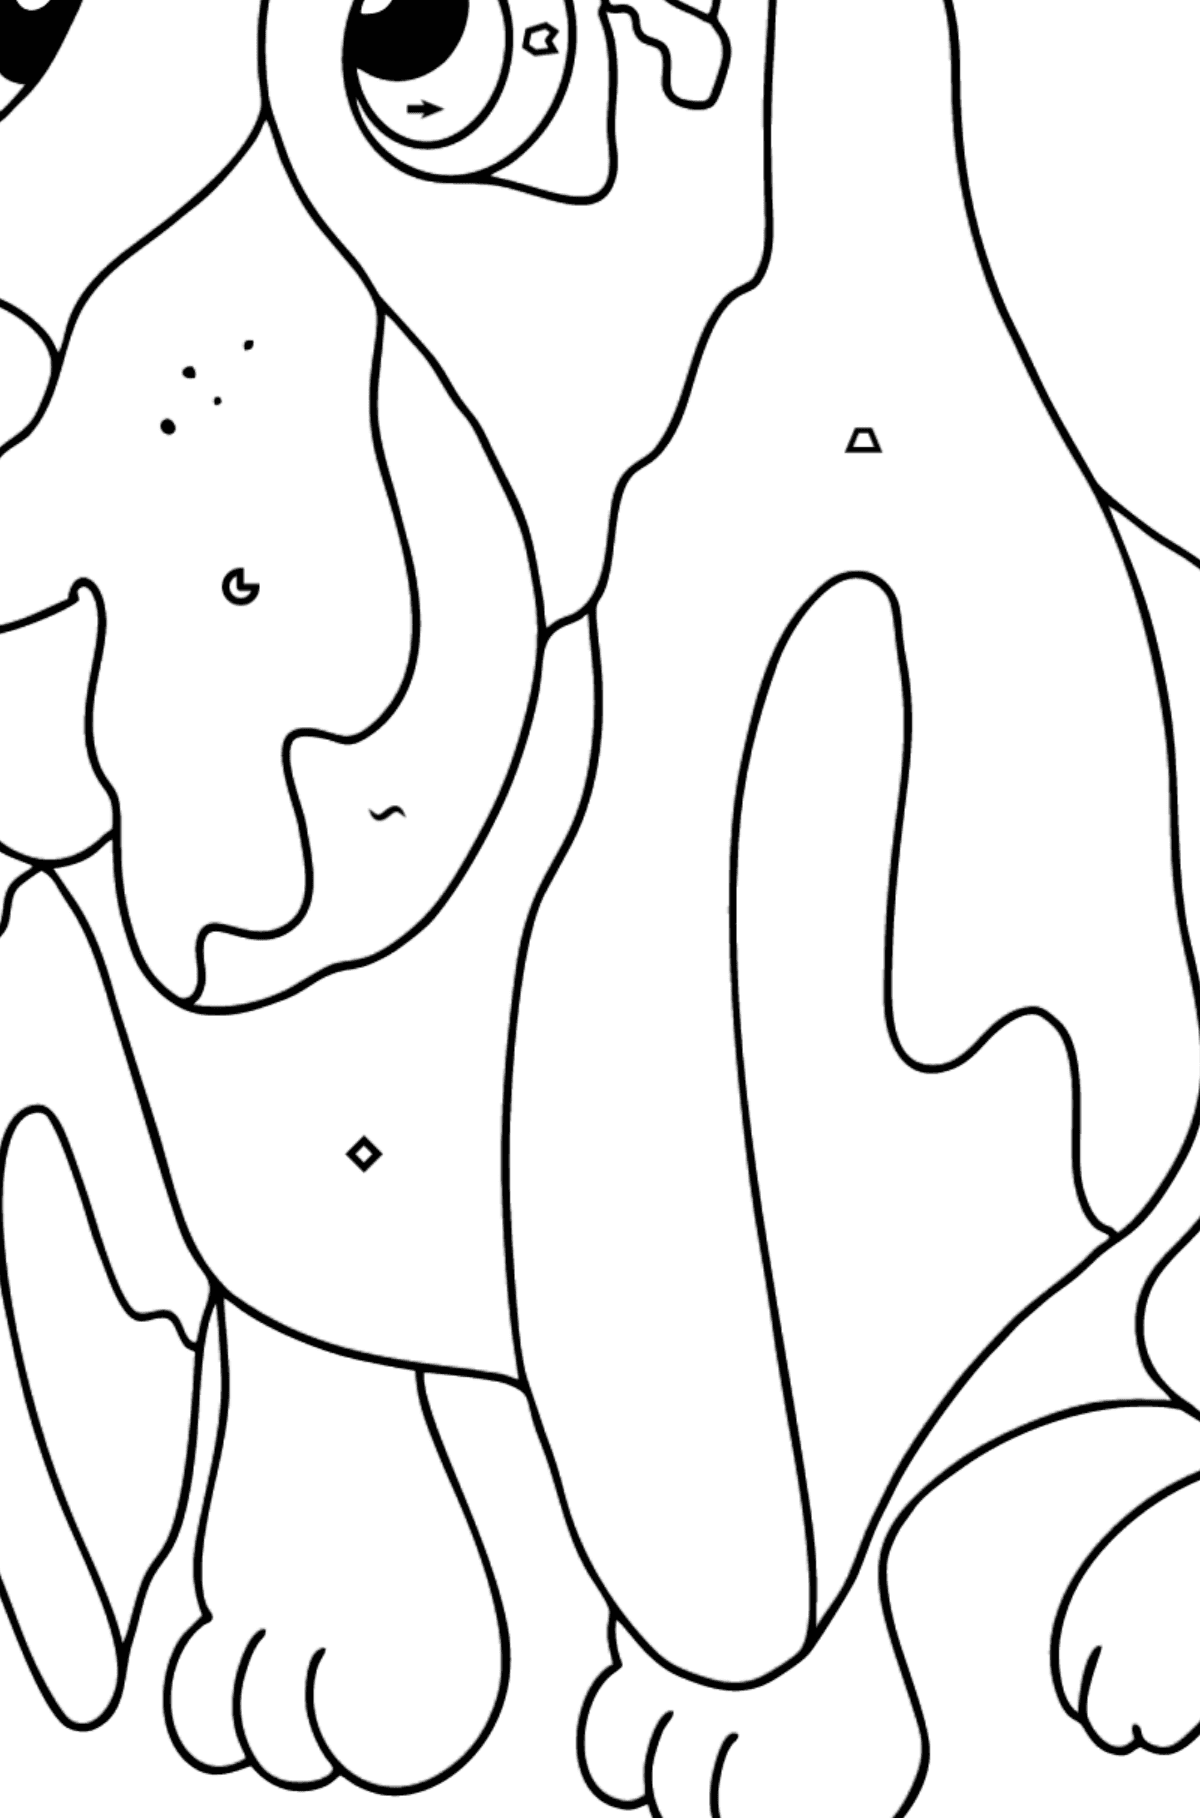 Coloring Page - A Dog is Sitting near a Bone - Coloring by Symbols and Geometric Shapes for Kids